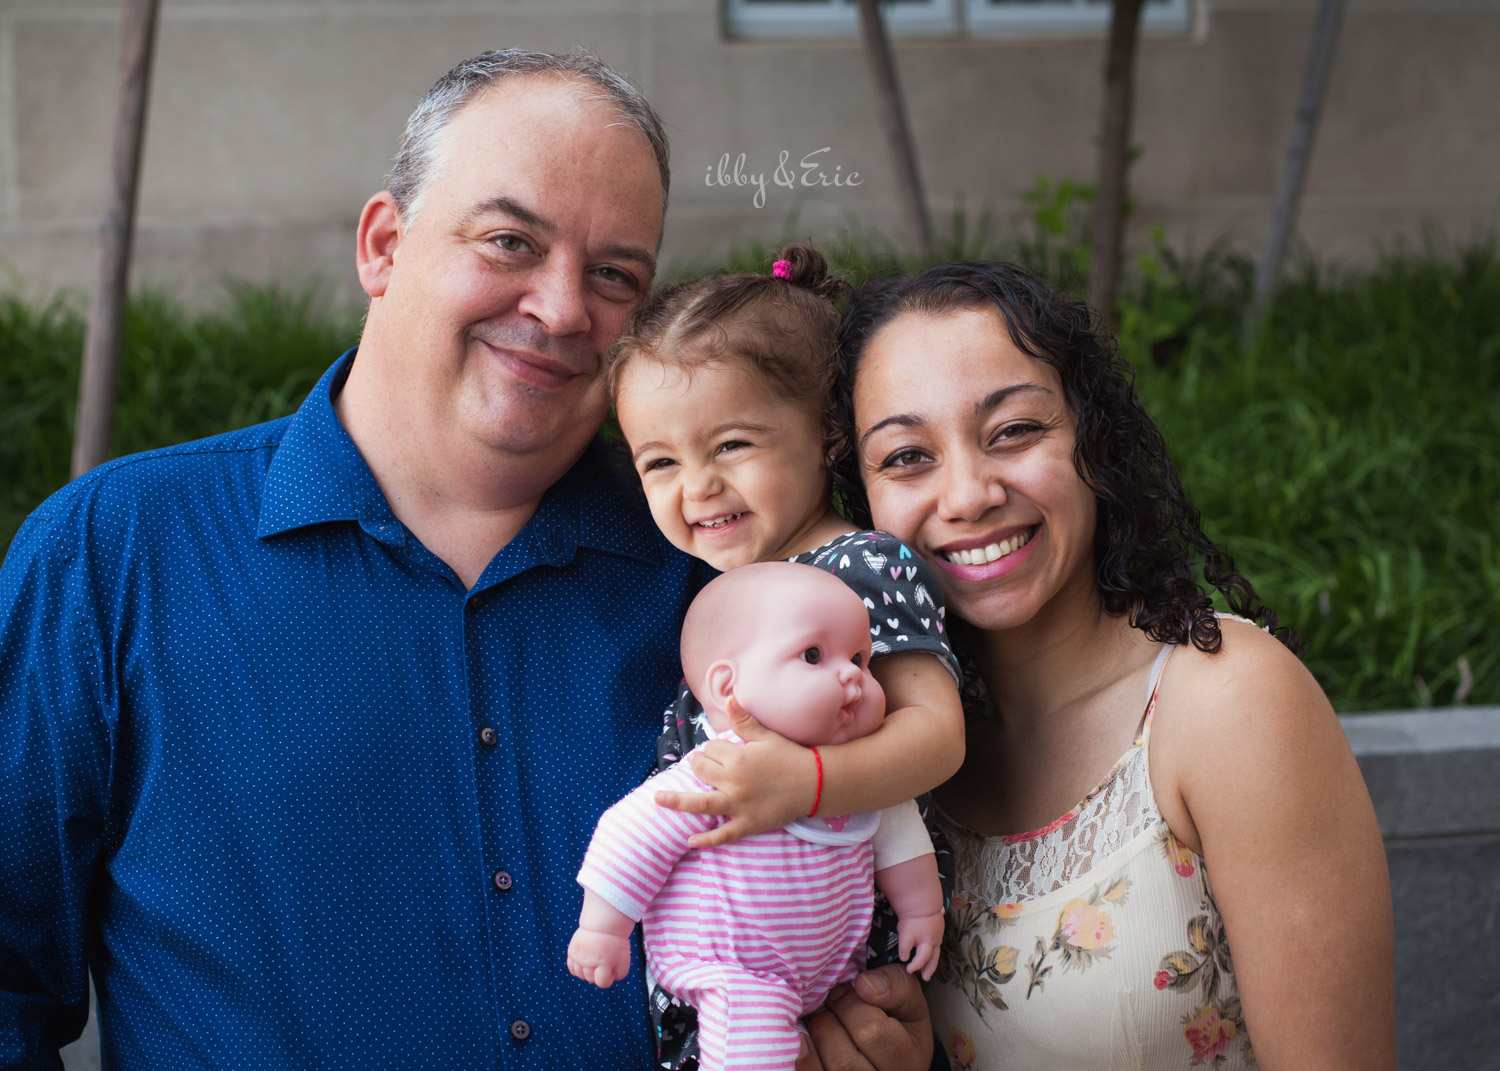 Mom, dad, and two year old daughter holding a baby doll smile together after their adoption ceremony in Greenfield, MA.